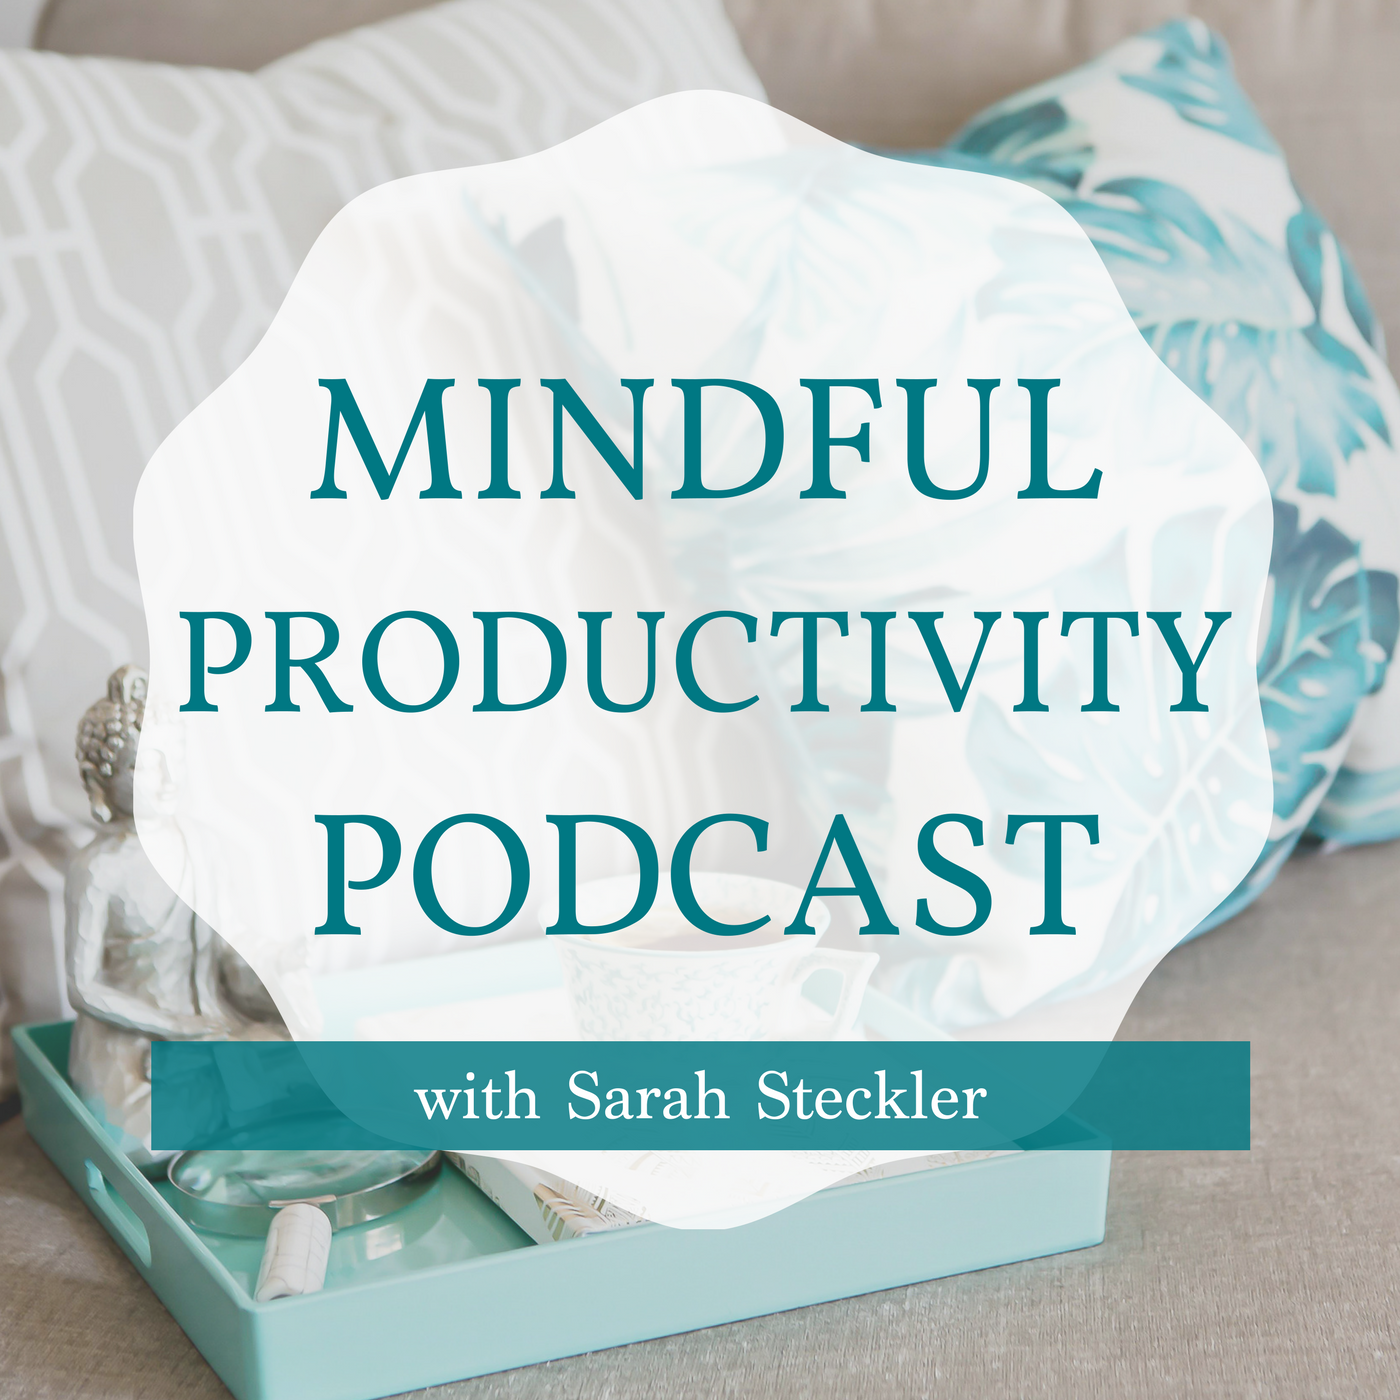 Mindful Productivity Podcast